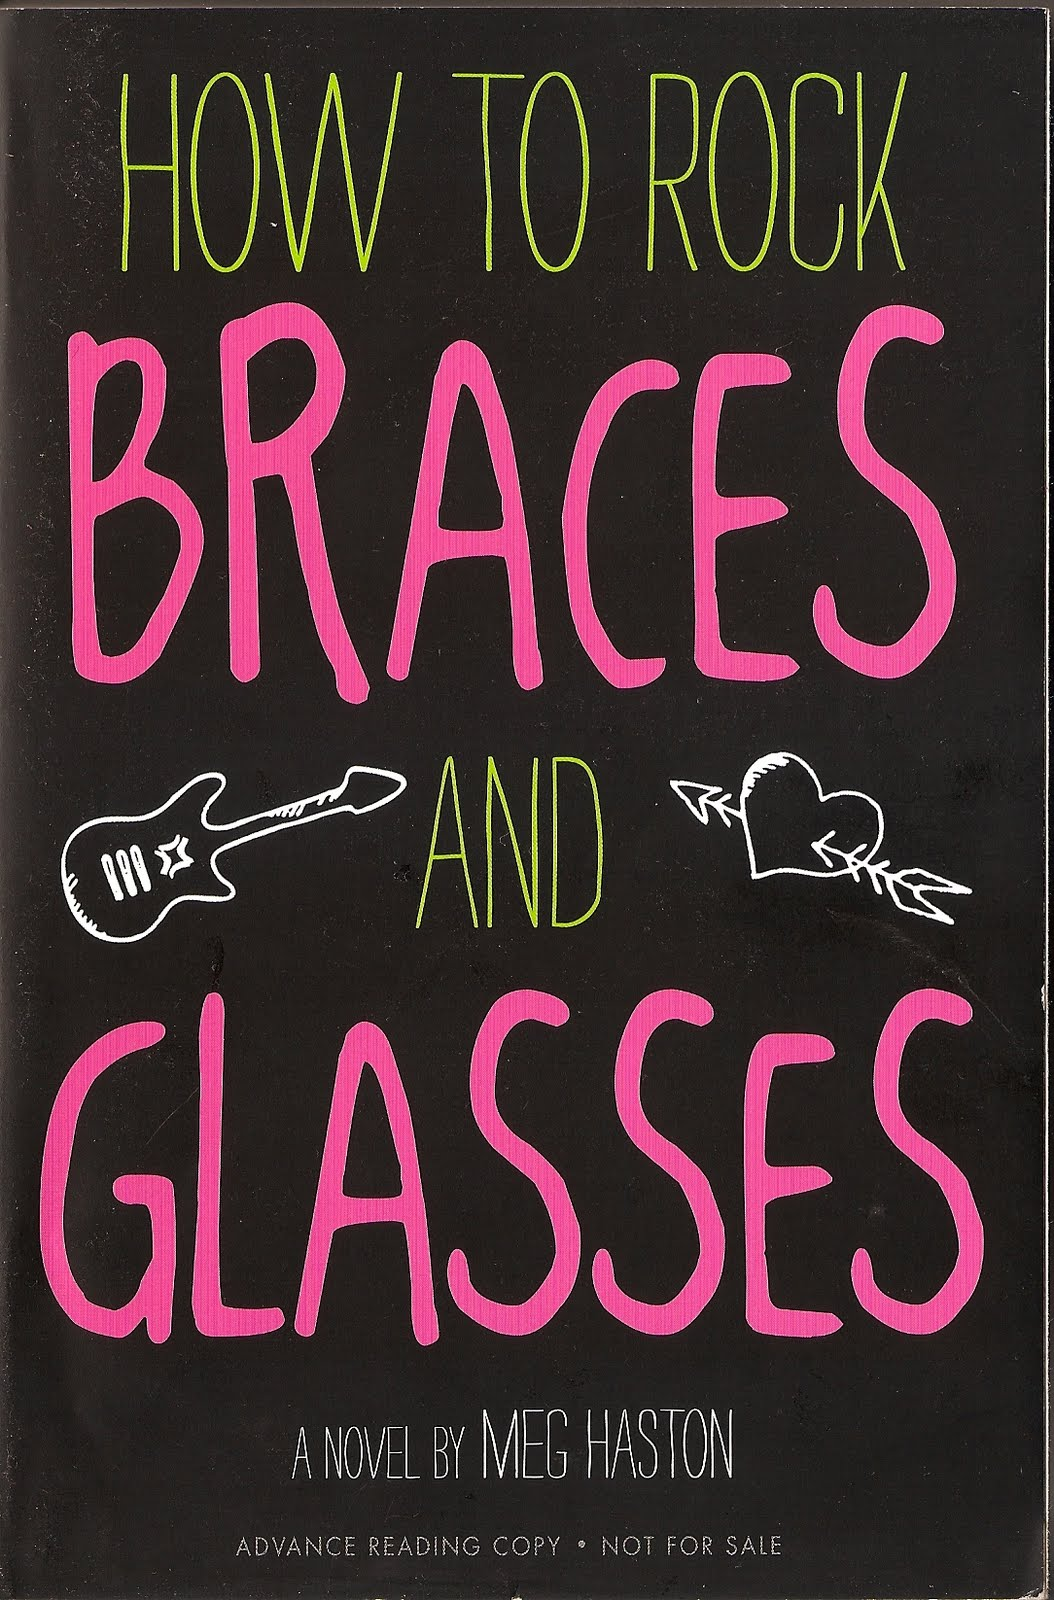 Braces Off Quotes Ninja Librarian How To Rock Braces And Glassesmeg Haston